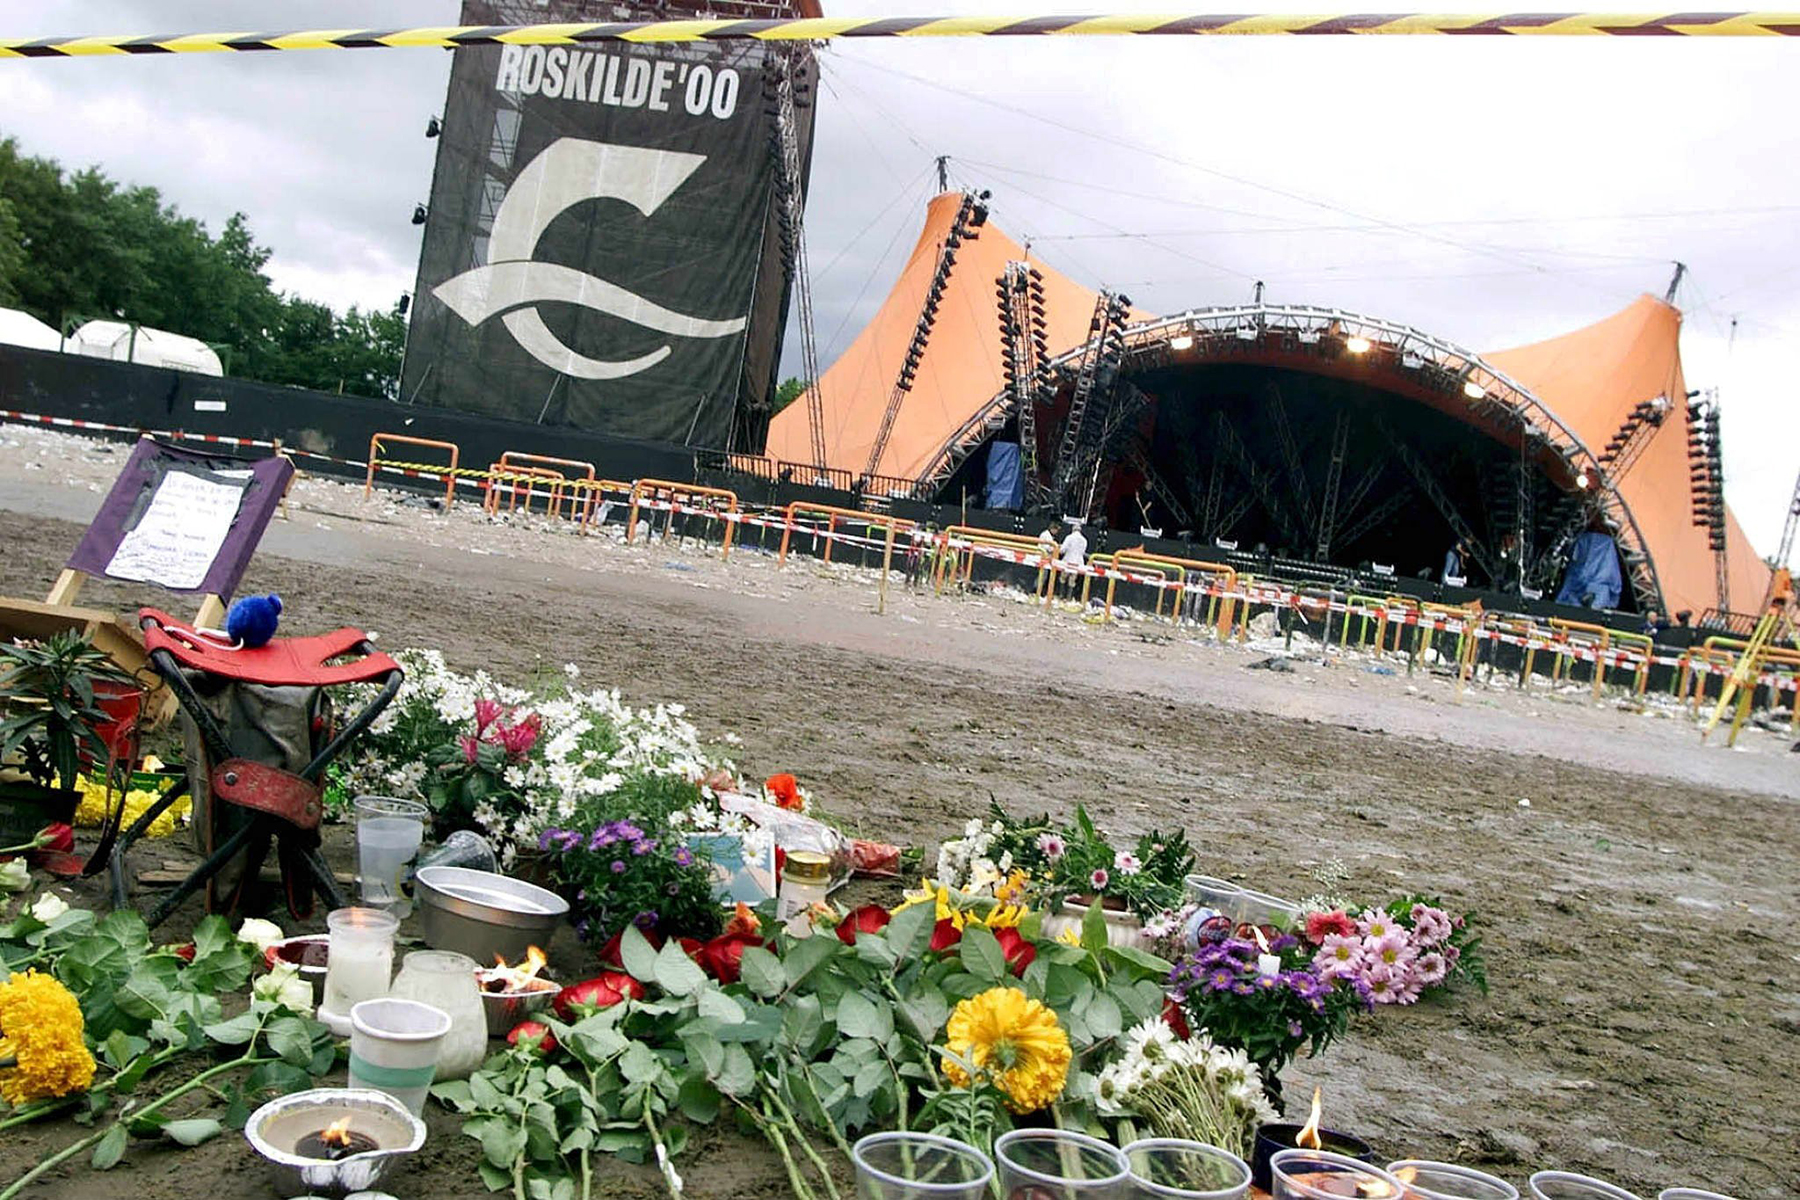 Roskilde Denmark: Flowers Lighted Candles and Other Tributes Mark the Spot Saturday 1st July 2000 Near where Late Yesterday Eight Young Men Were Trampled to Death During a Concert by the American Pearl Jam Band As Part of the Roskilde Rock Festival in Denmark So Far Four Have Been Identified As Coming From Denmark Sweden Holland and Germany Epa Photo/nordfoto/brian Rasmussen Denmark RoskildeDenmark-concert-deaths - Jul 2000